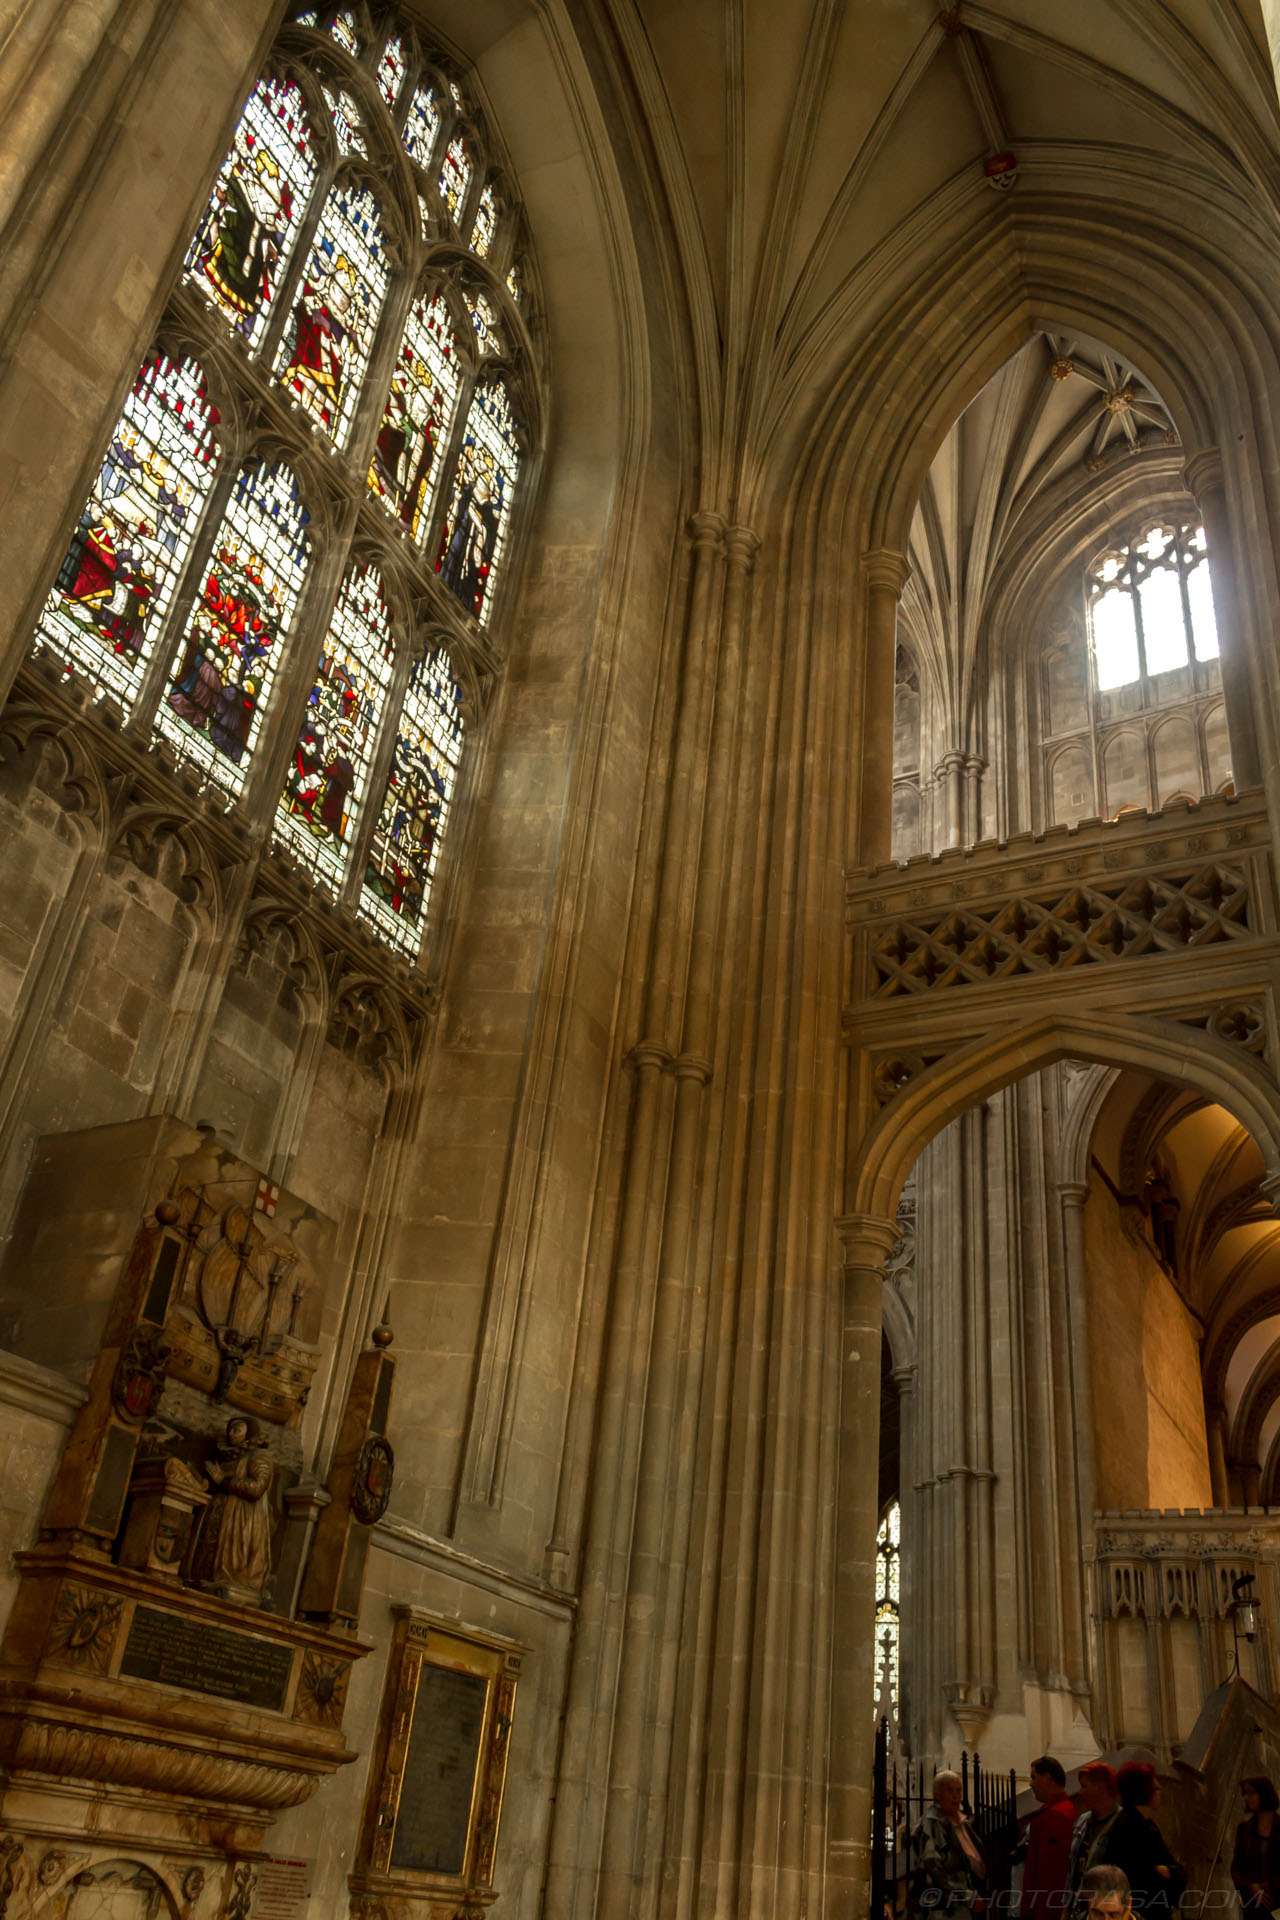 http://photorasa.com/canterbury-cathedral/arches-and-stained-glass-in-north-eastern-corner-of-nave/